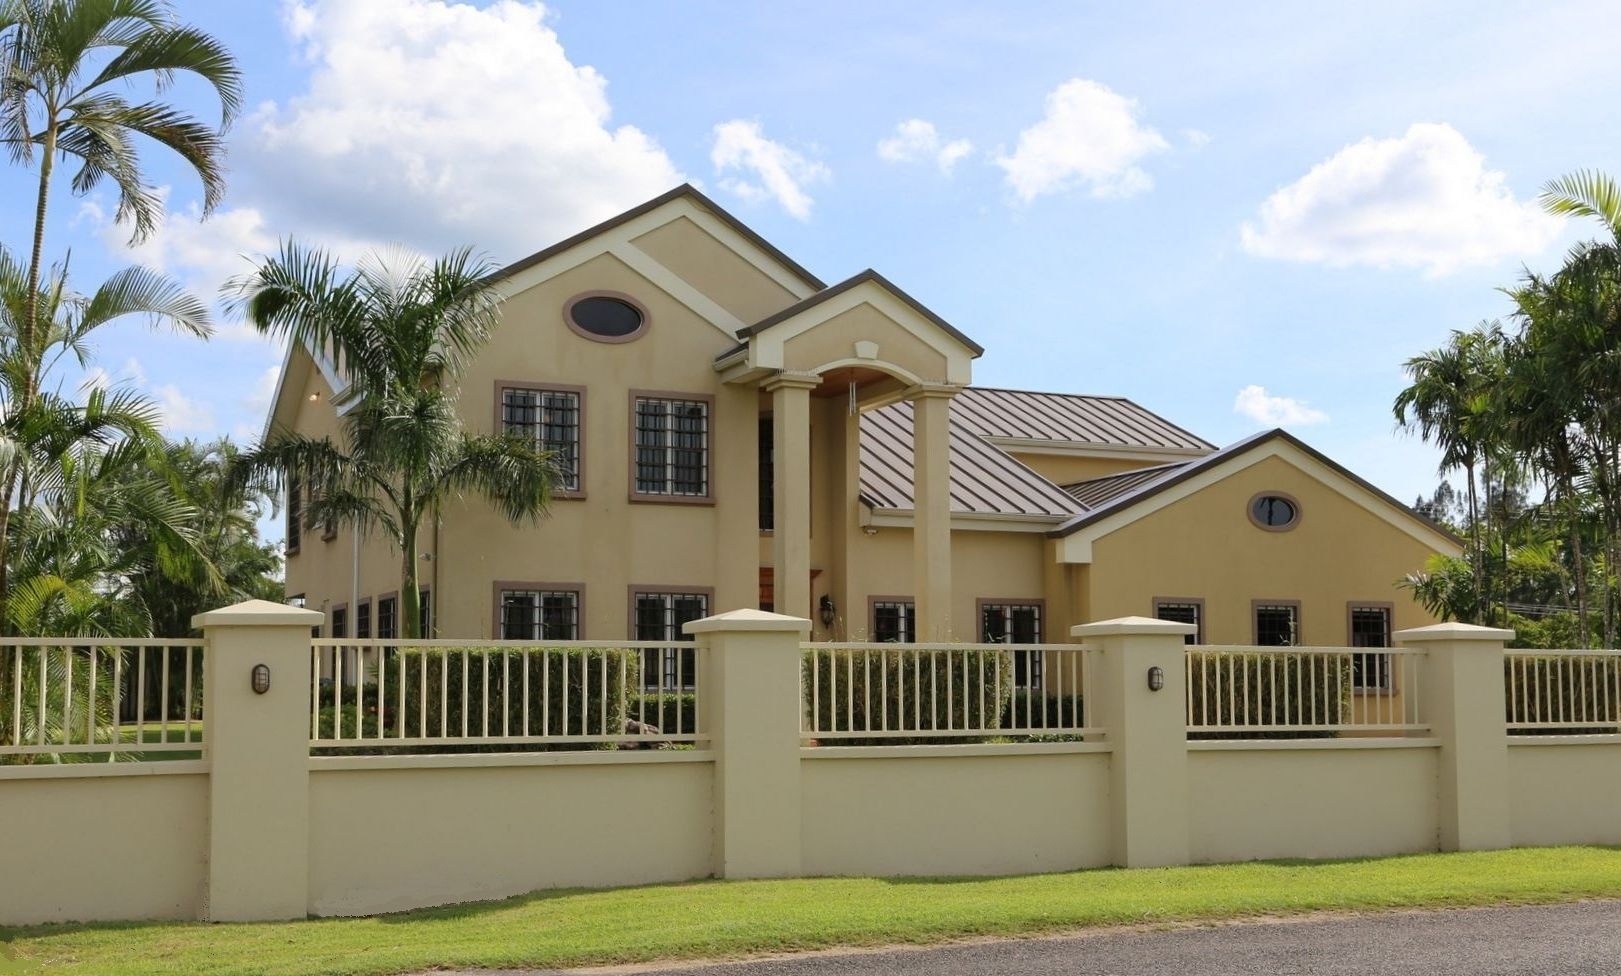 Single Family Home for Sale at Belmopan Estate in Orchid Gardens Belmopan, Cayo, Belize